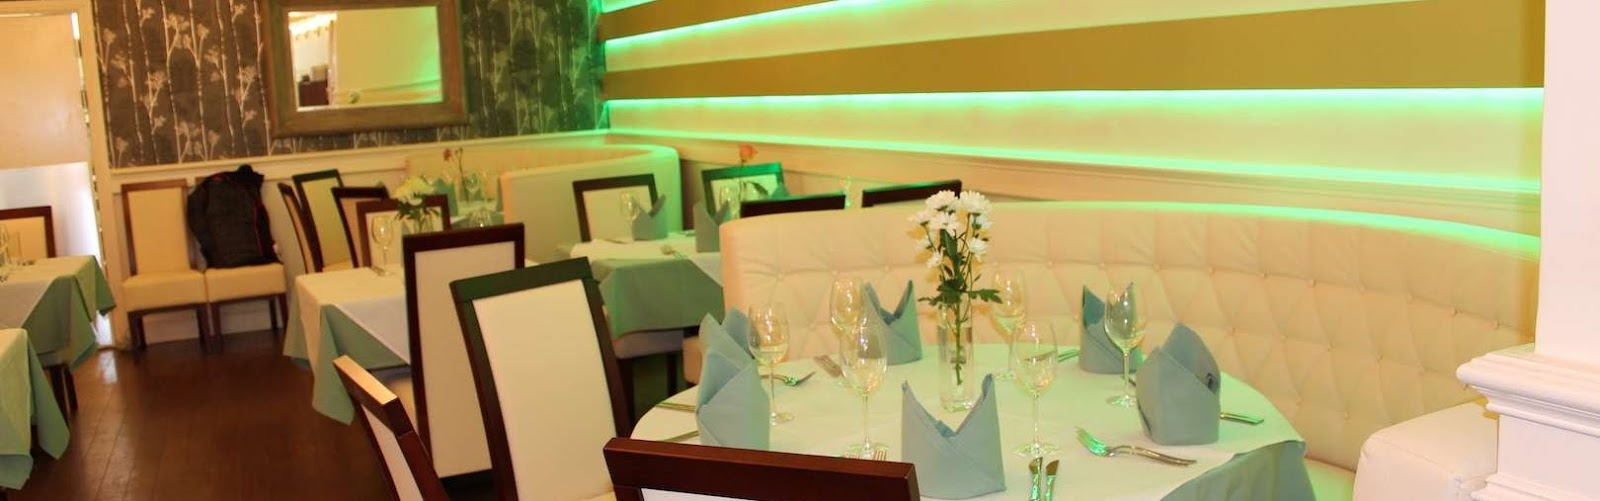 Bayleaf Kitchen | Authentic Indian Restaurant Southampton